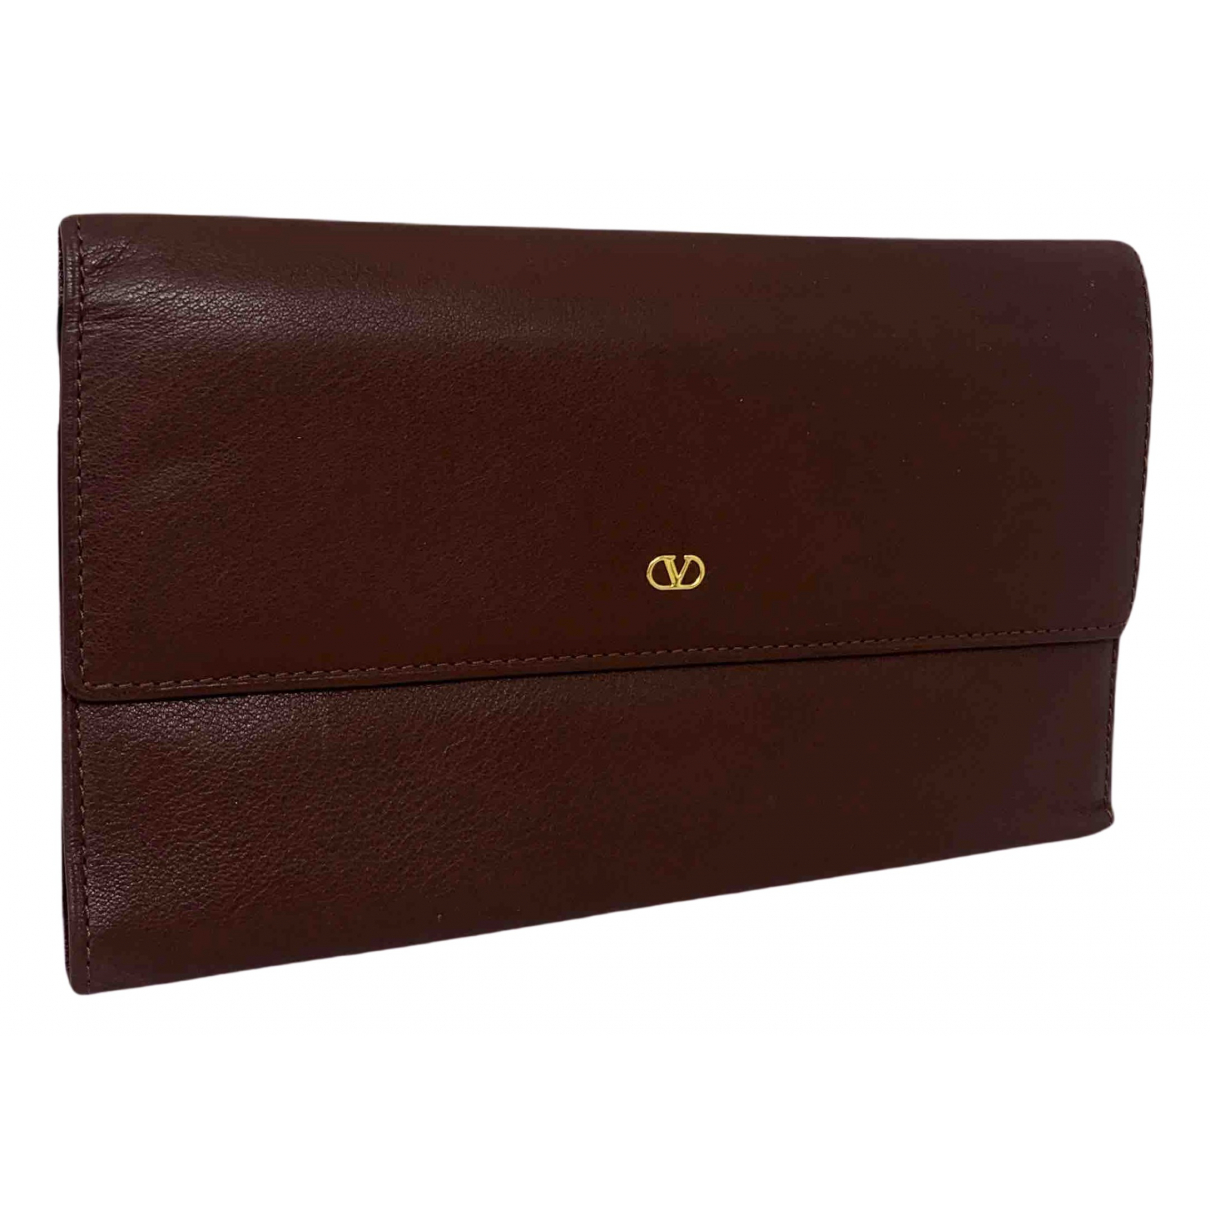 Valentino Garavani N Brown Leather wallet for Women N